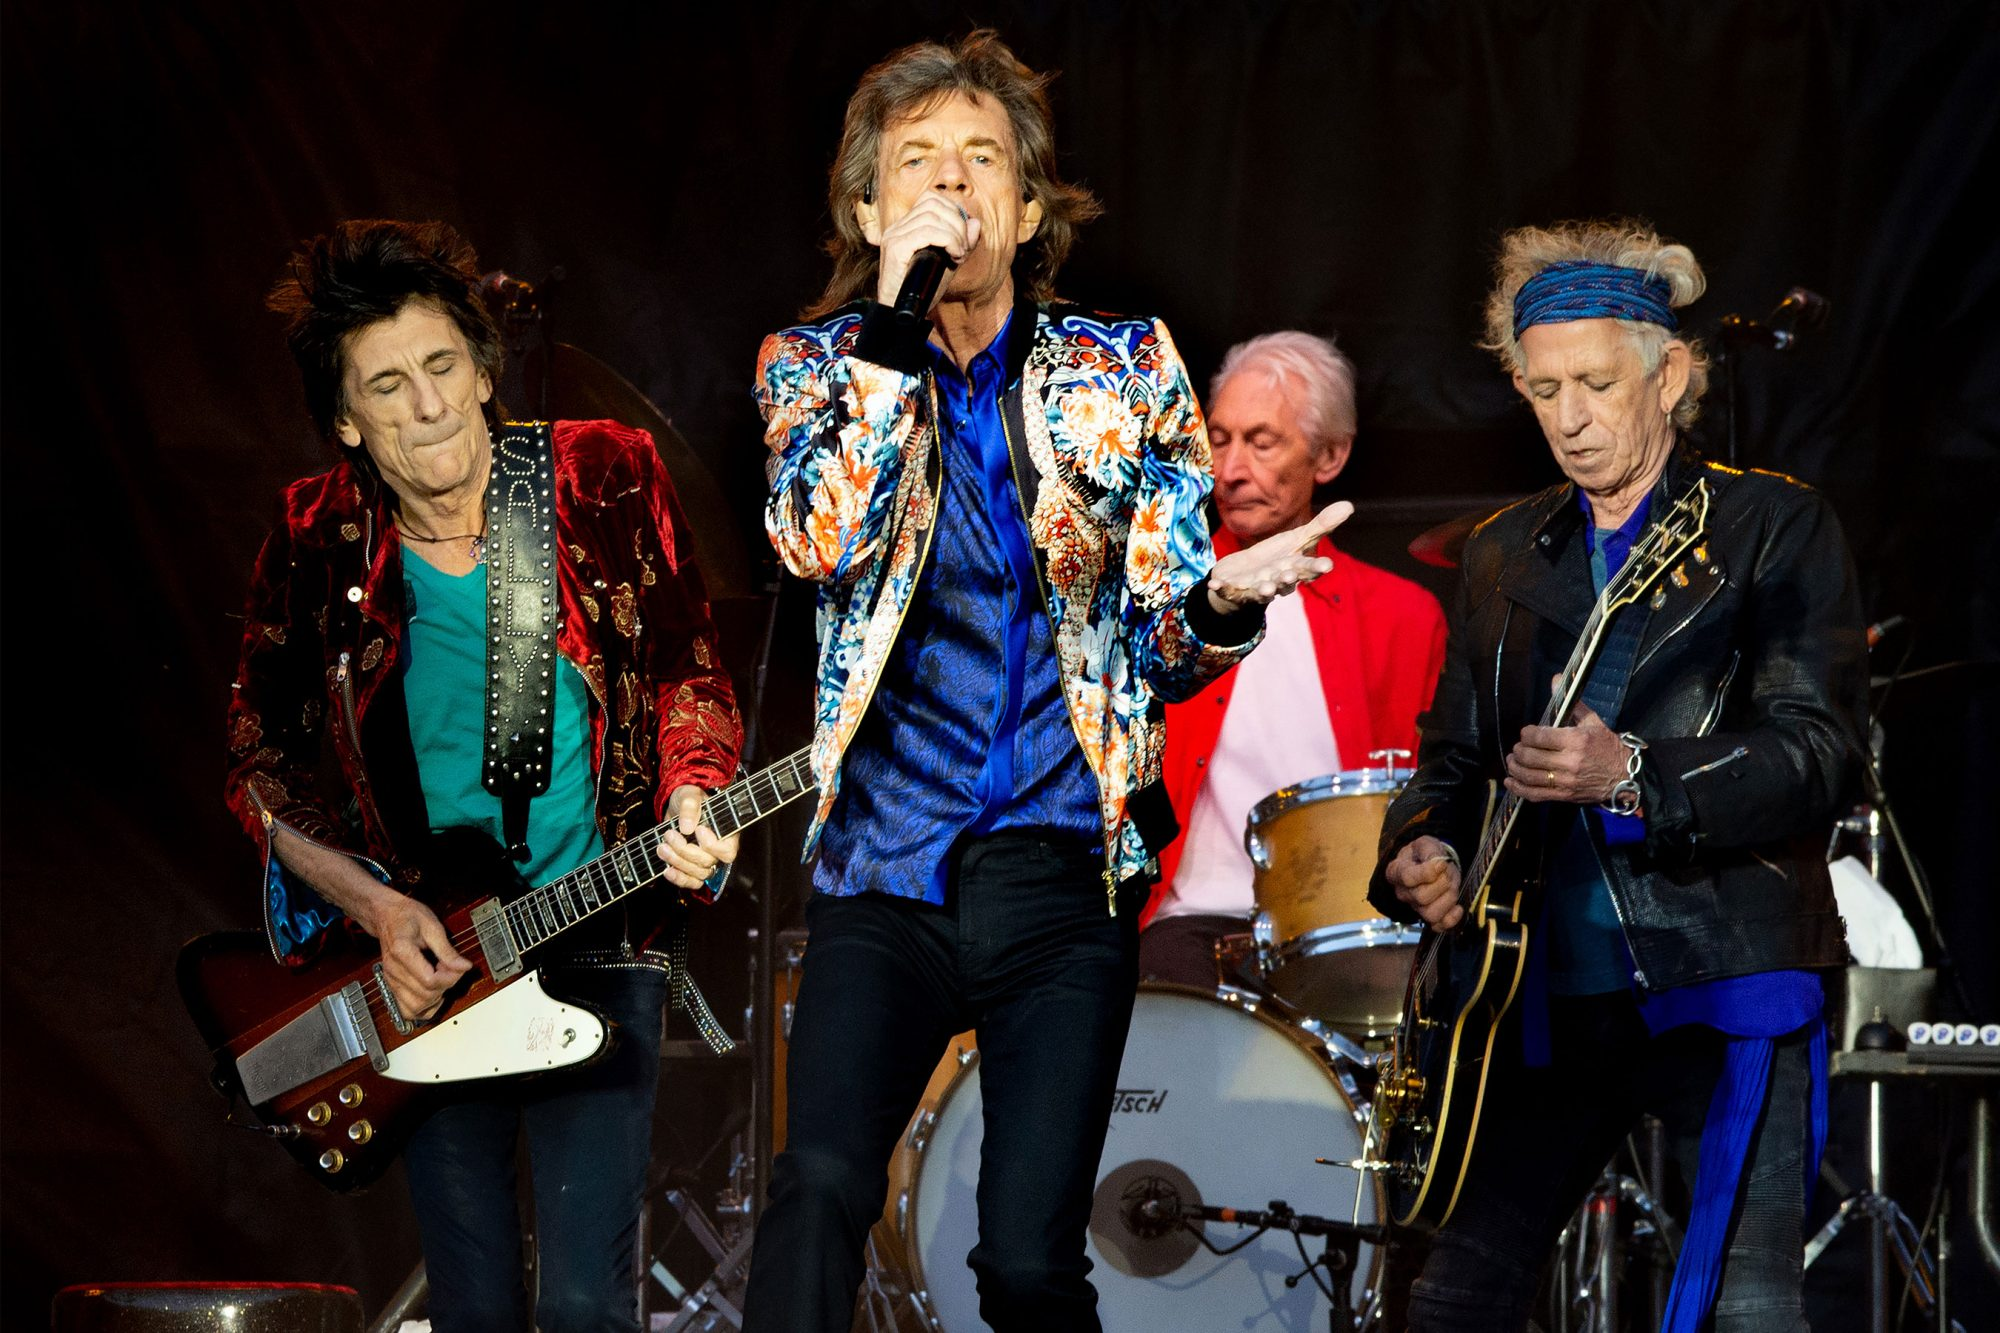 The Rolling Stones Perform At Old Trafford